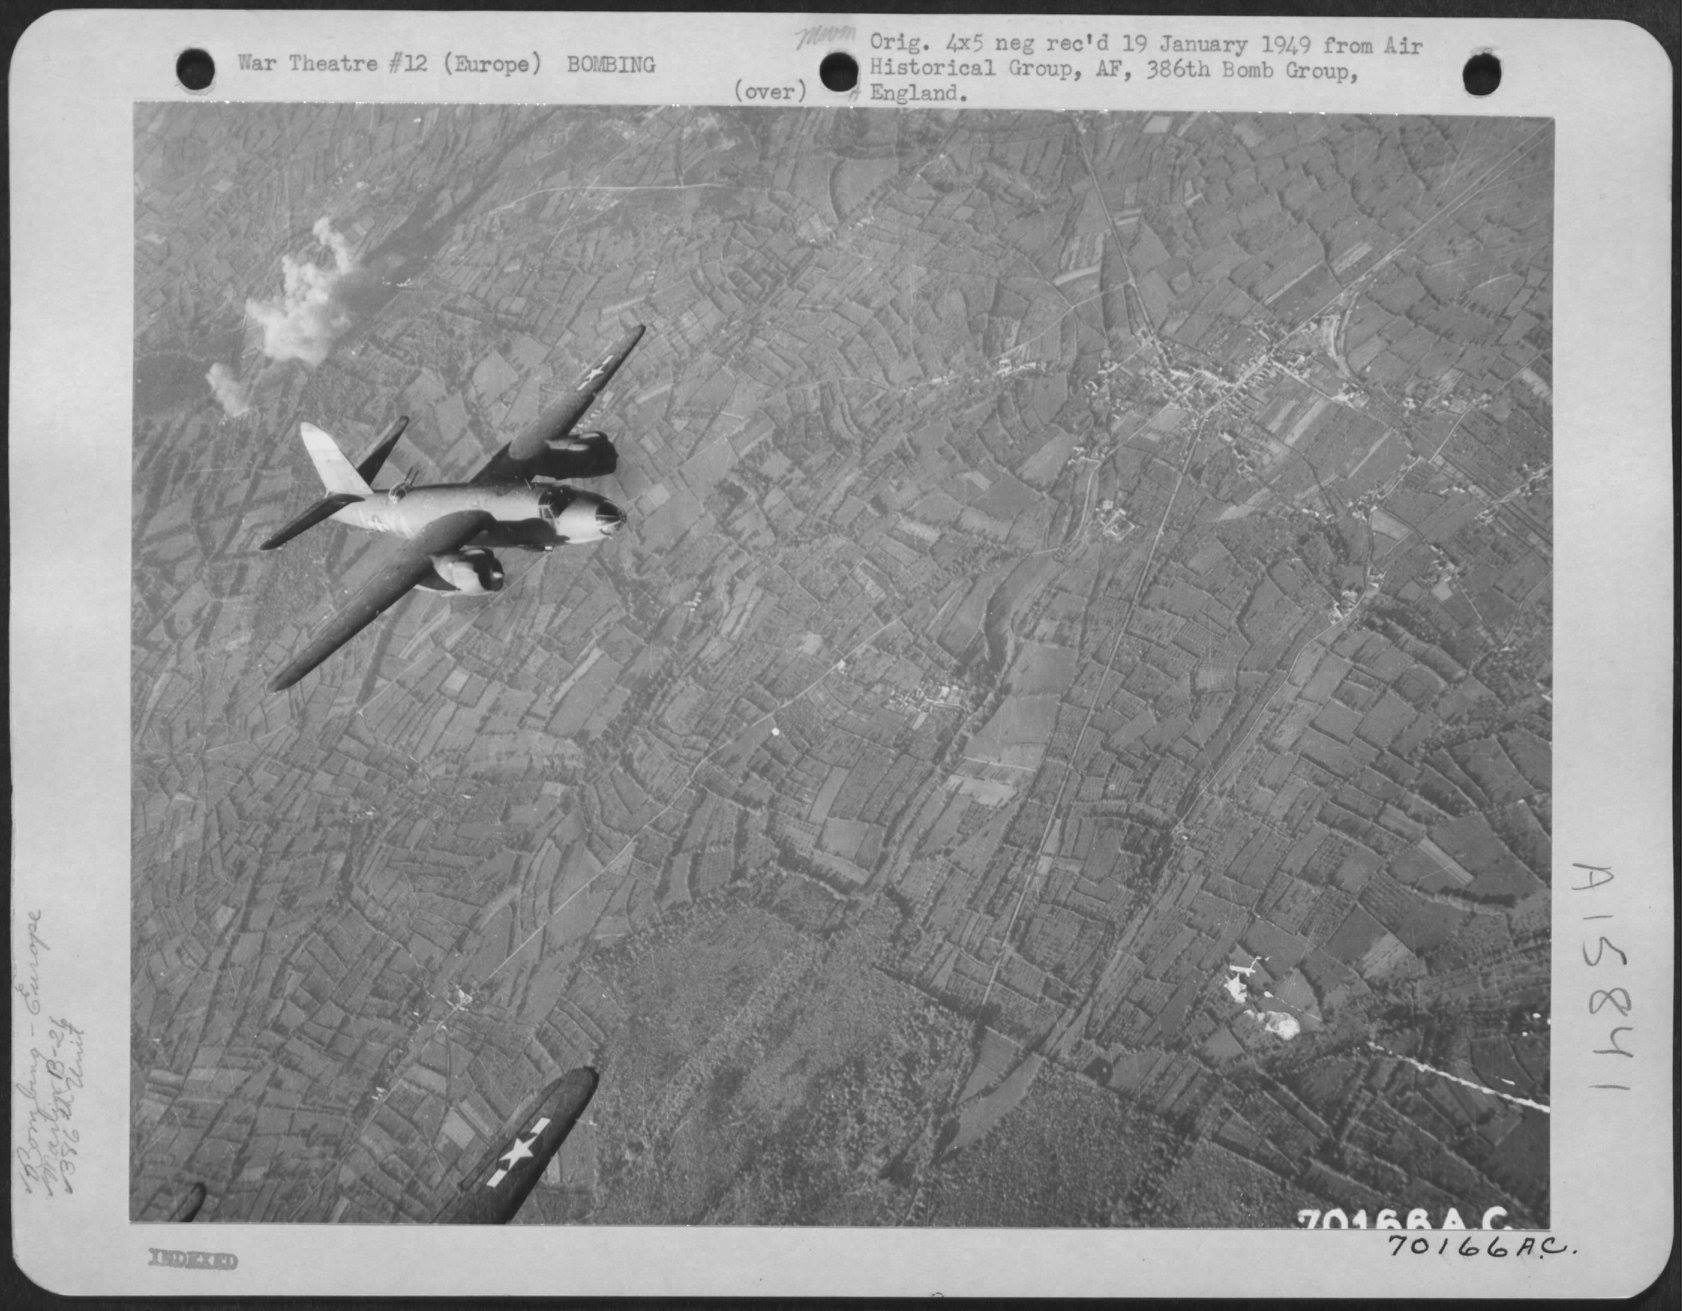 USAAF B 26 Marauder 386BG555BS YAJ leaving the target area 1 Jun 1944 01